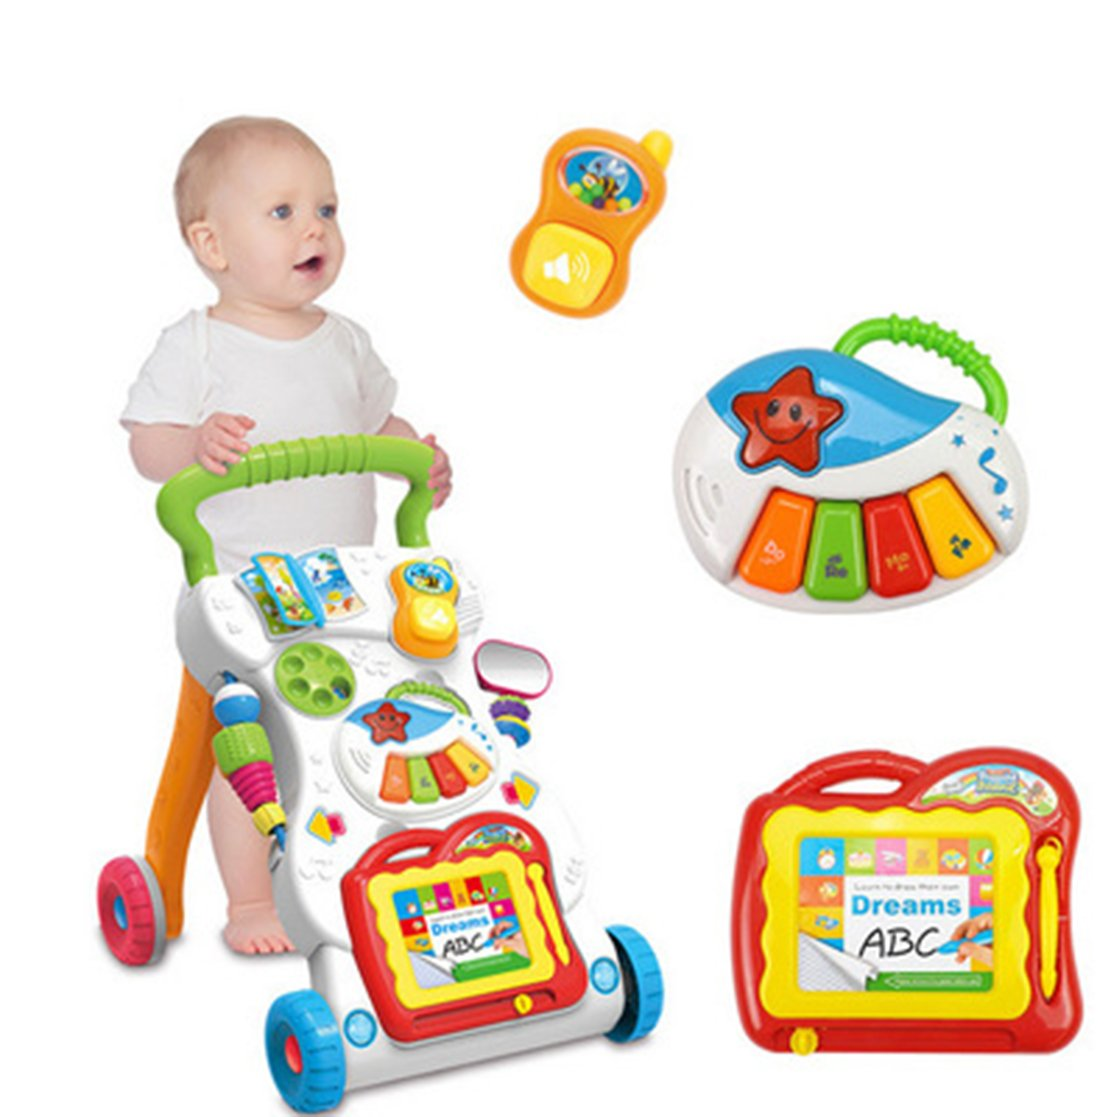 Bigbuyu Activity Baby Walker Sit-to-Stand Learning Walker Toddler Toys for 1-3 Years Old, Push and Pull Toy Learn-to-Walk Cart Toys